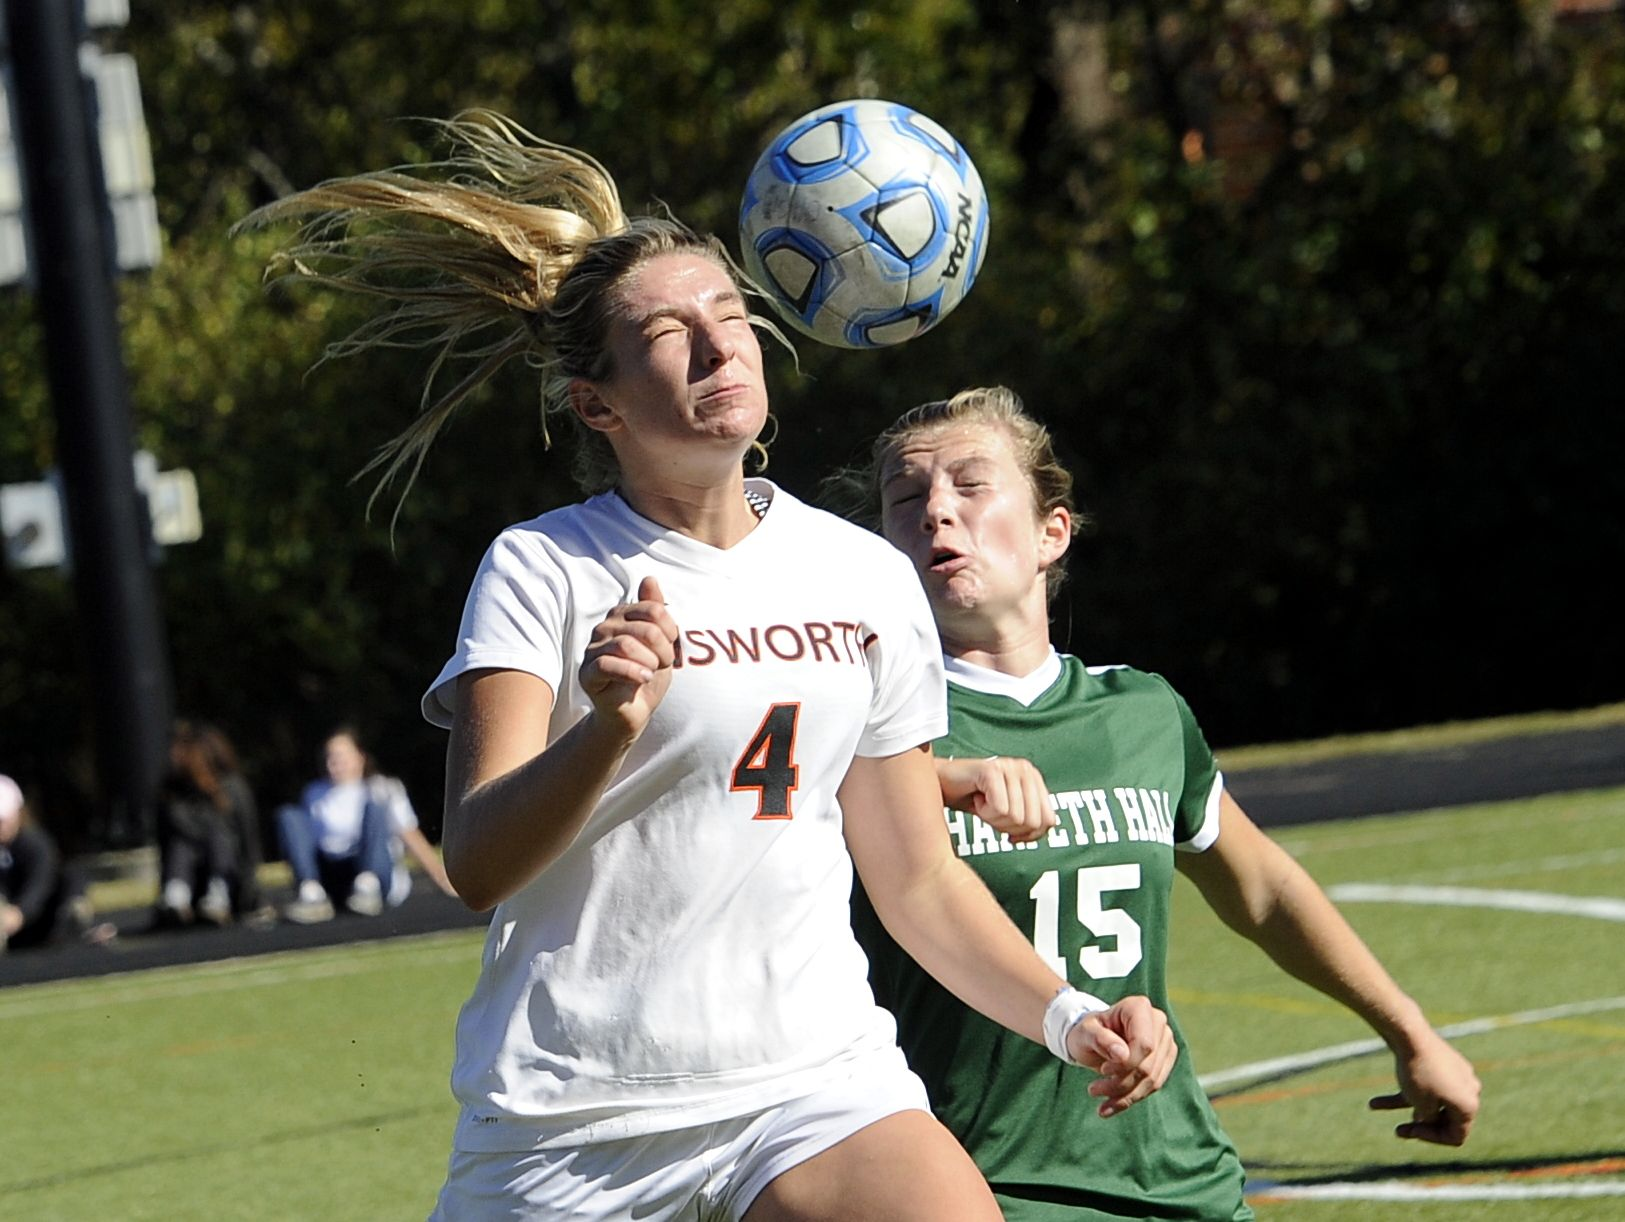 Ensworth senior Gracie Munson heads a bouncing ball in front of Harpeth Hall senior Lauren Stringfield on Oct. 22, 2016.